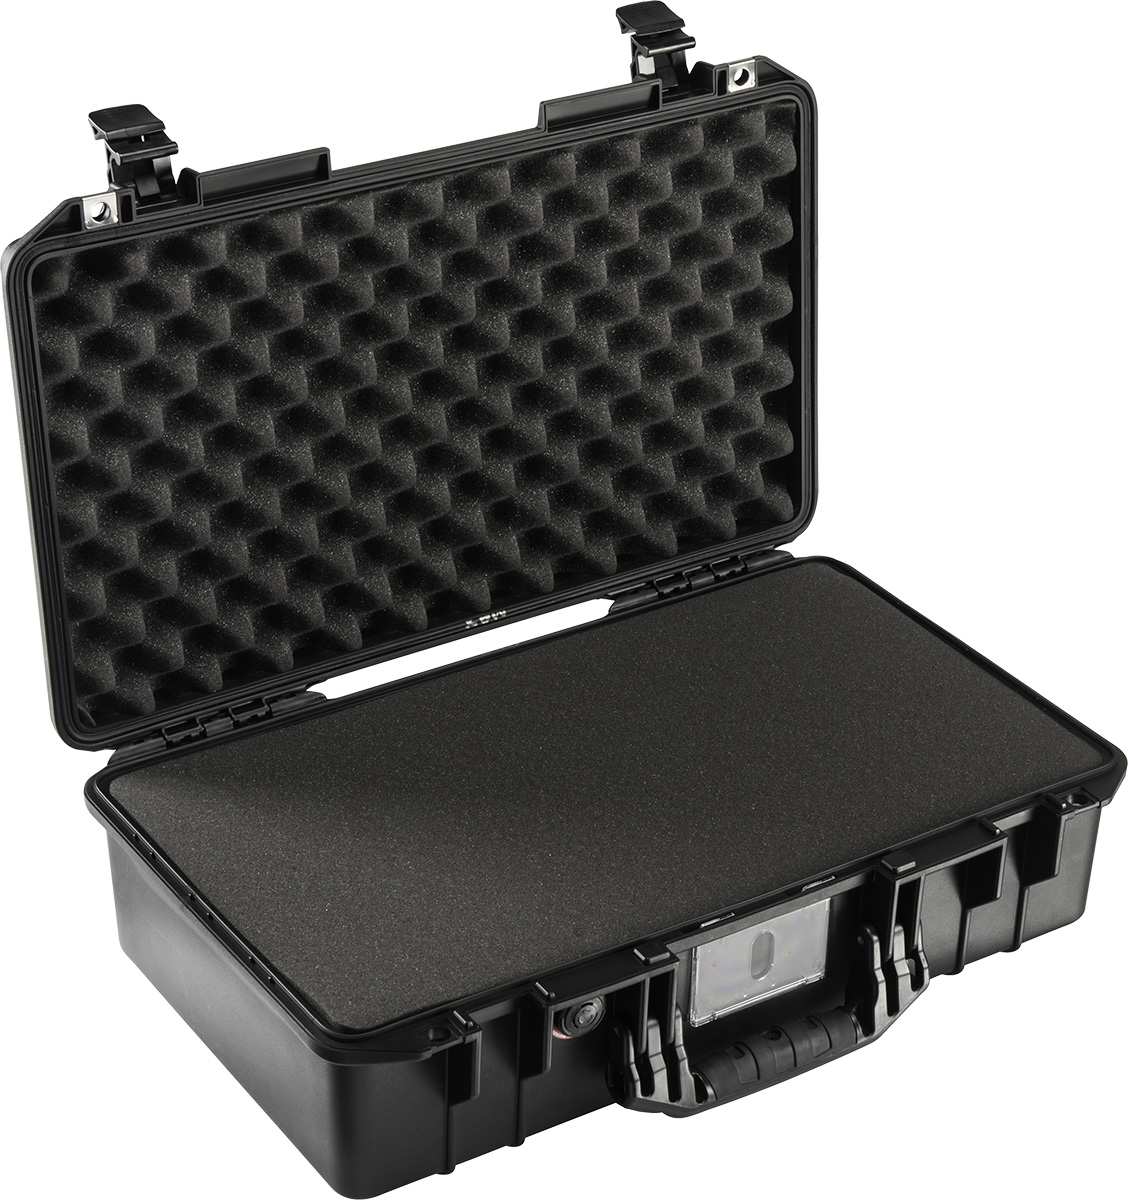 buy pelican air 1525 shop foam protection case